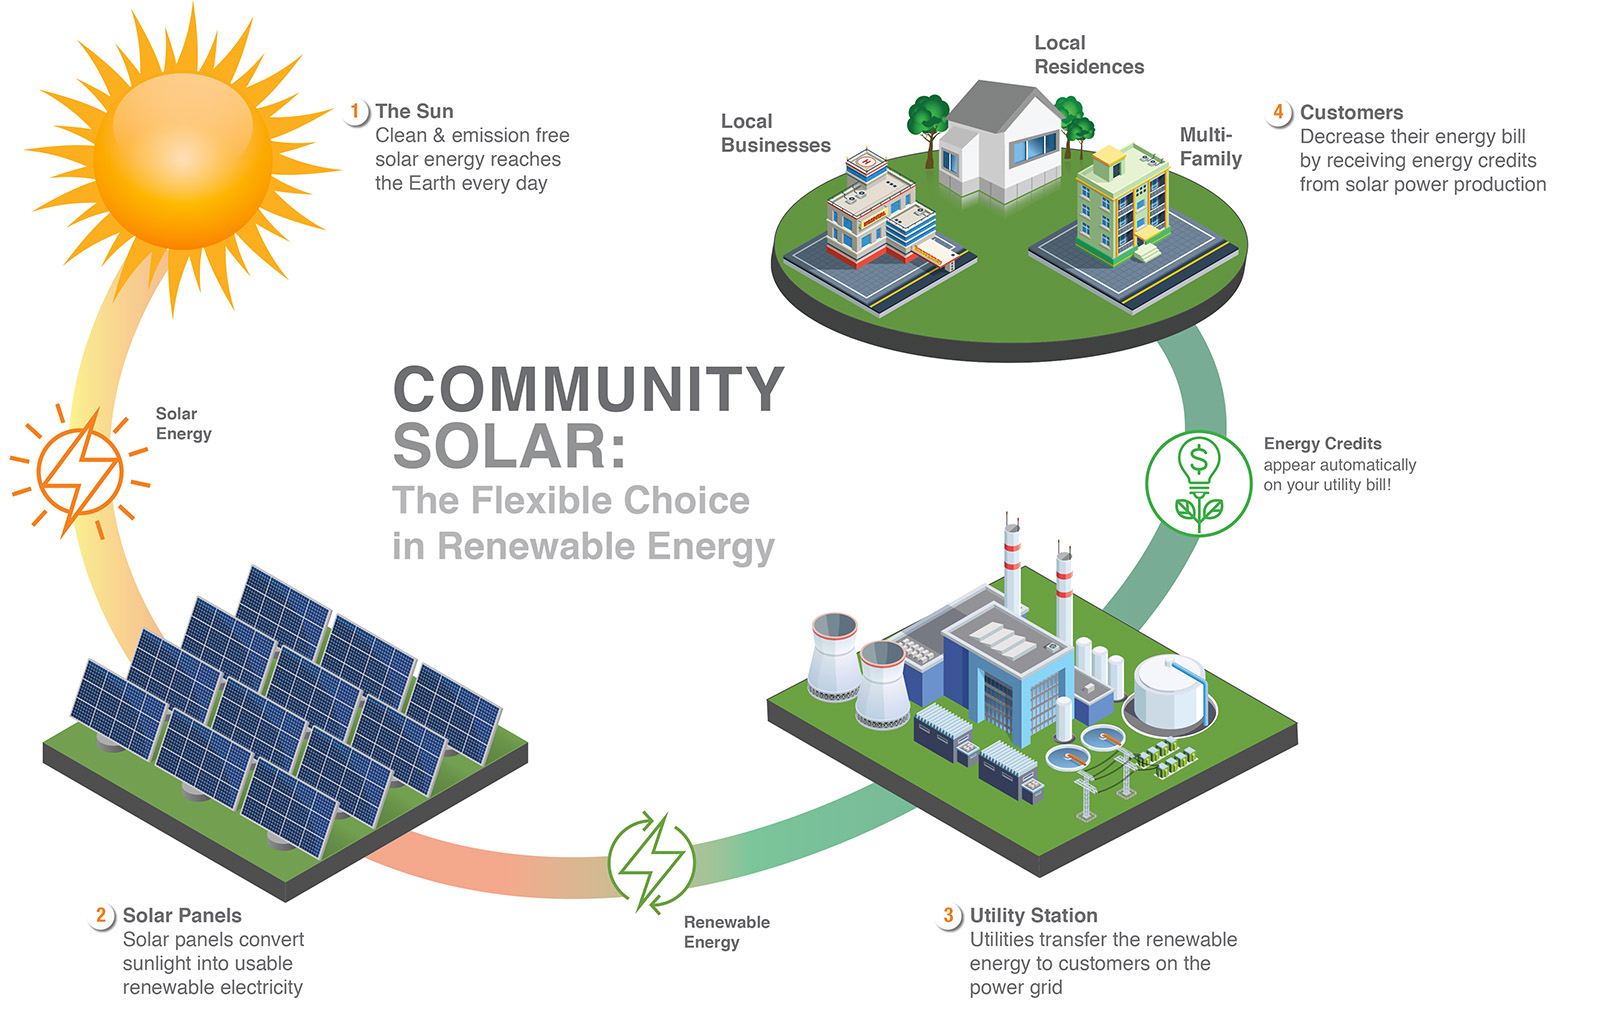 Not sure who to cite for this image:  https://arcticsolarventures.com/2018/04/18/community-solar-is-coming-to-alaska/